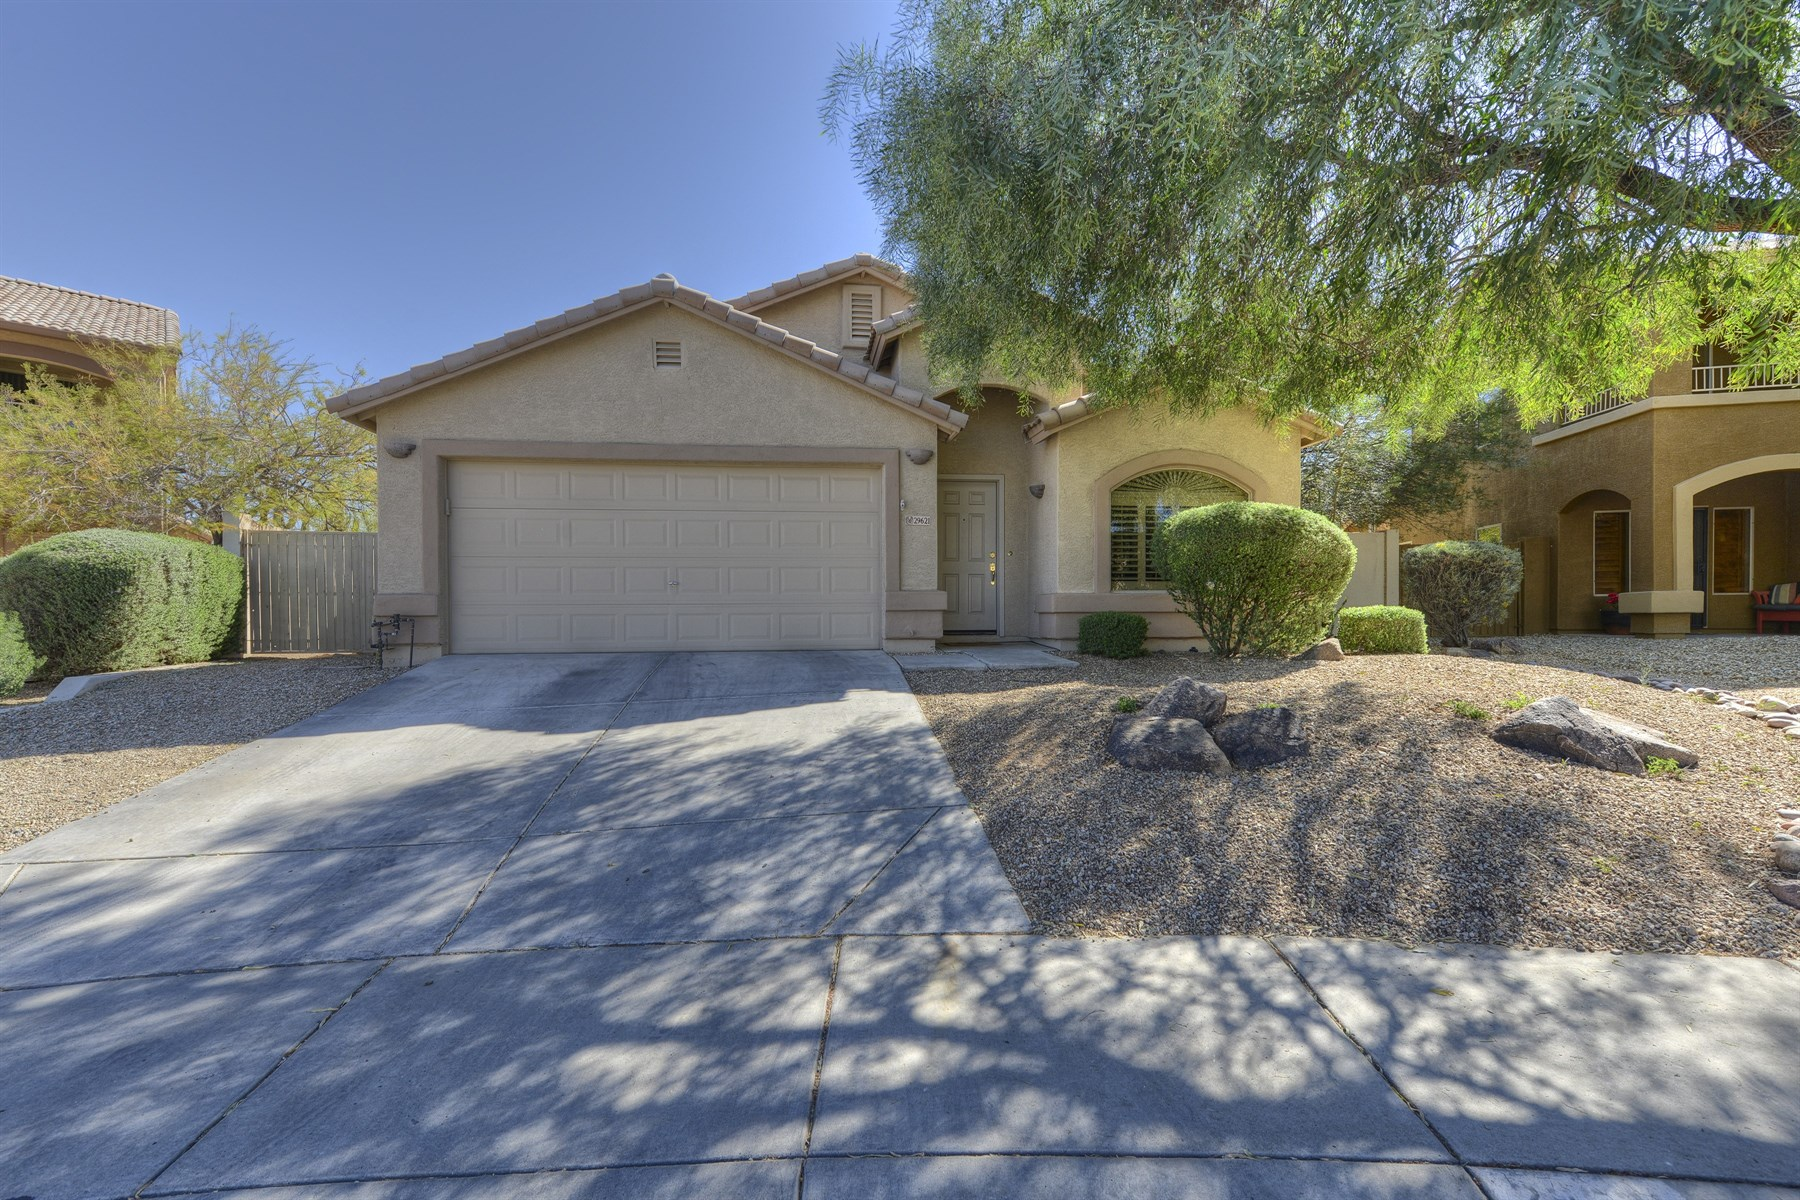 sales property at Spacious home in sought after Tatum Ranch neighborhood